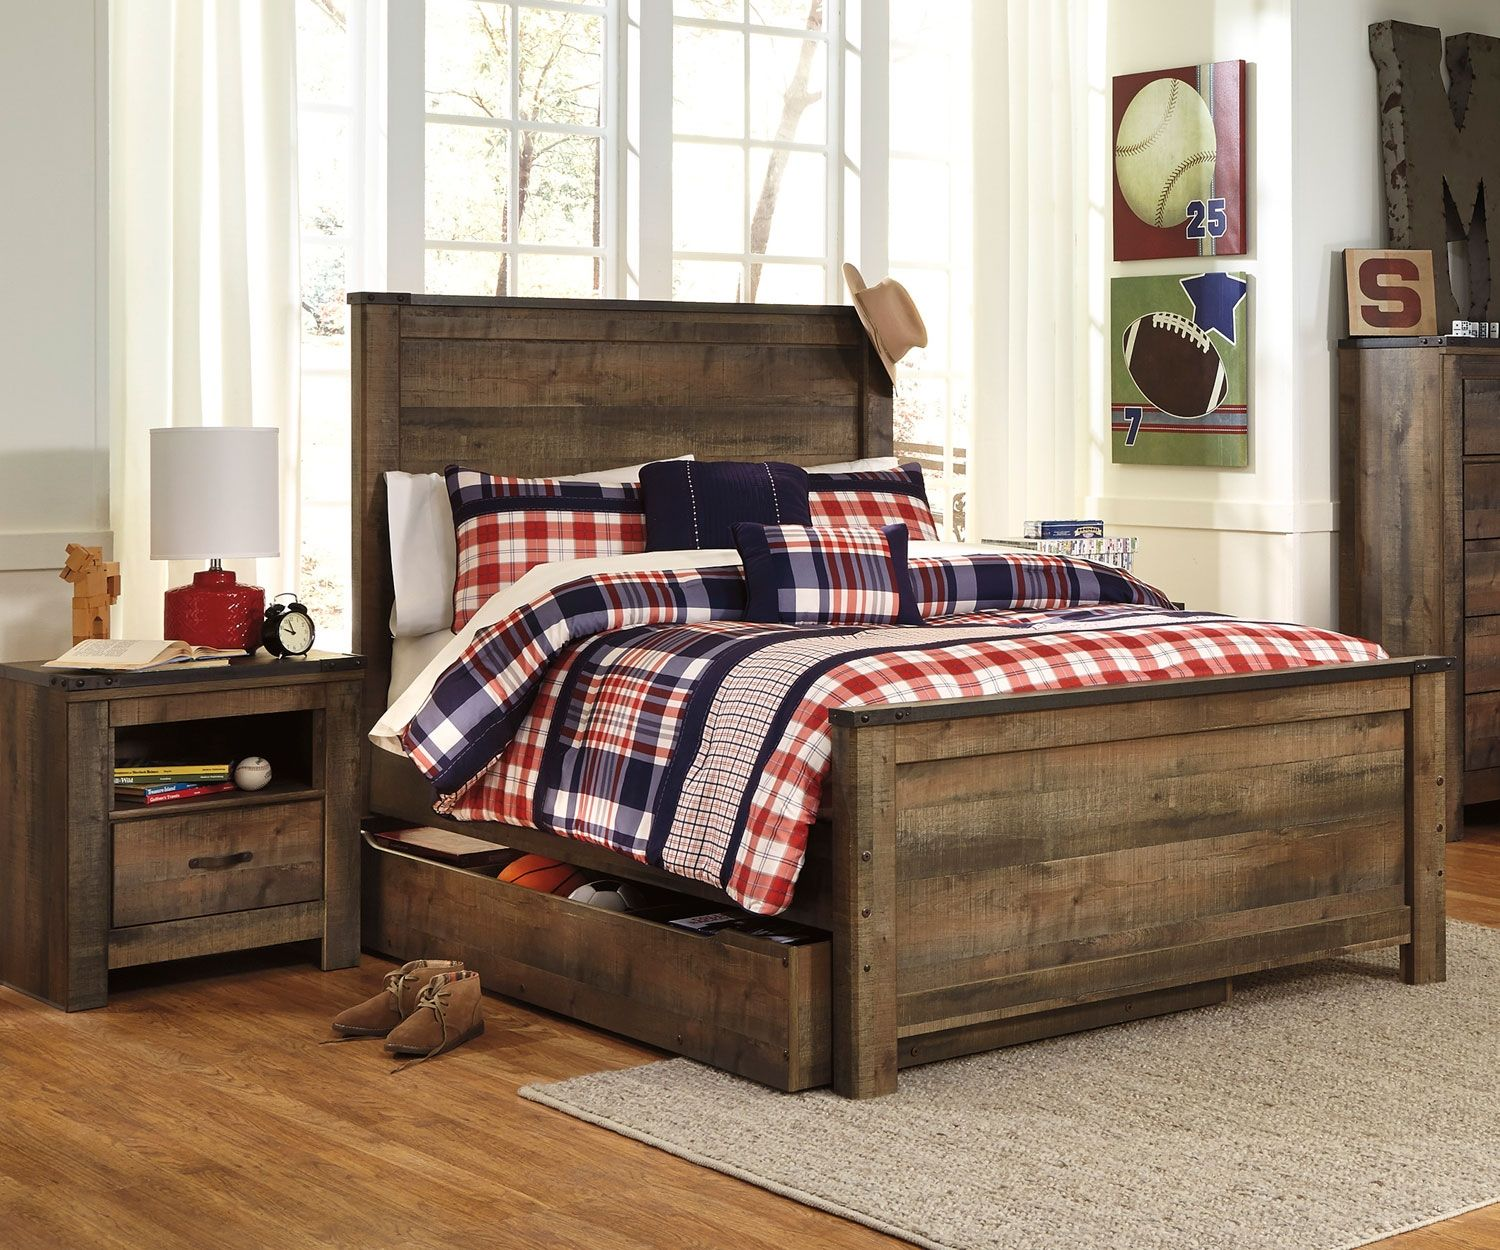 Buy Our Ashley Trinell Full Size Panel Bed With Trundle At